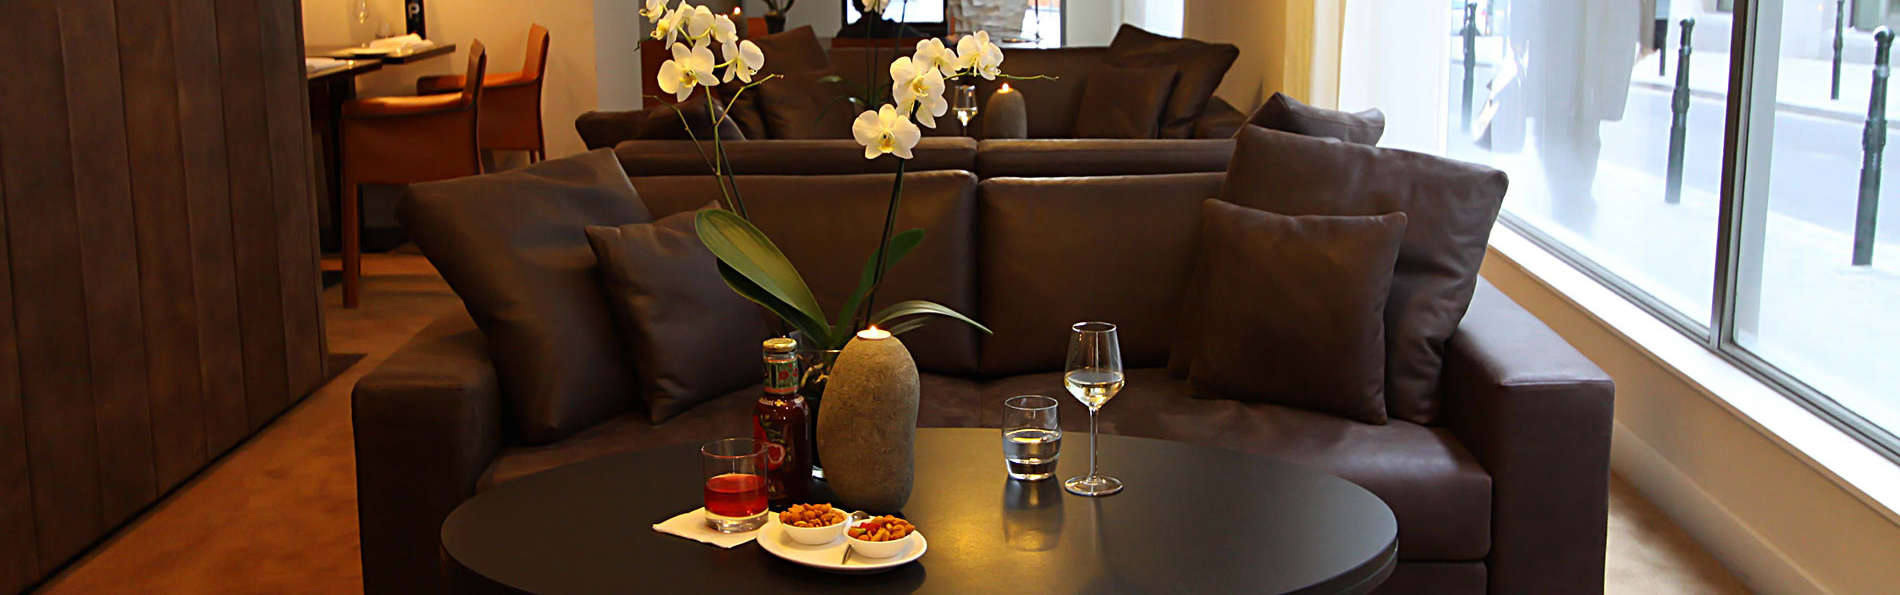 Sandton Hotel Brussels City Center - edit_Lounge1.jpg